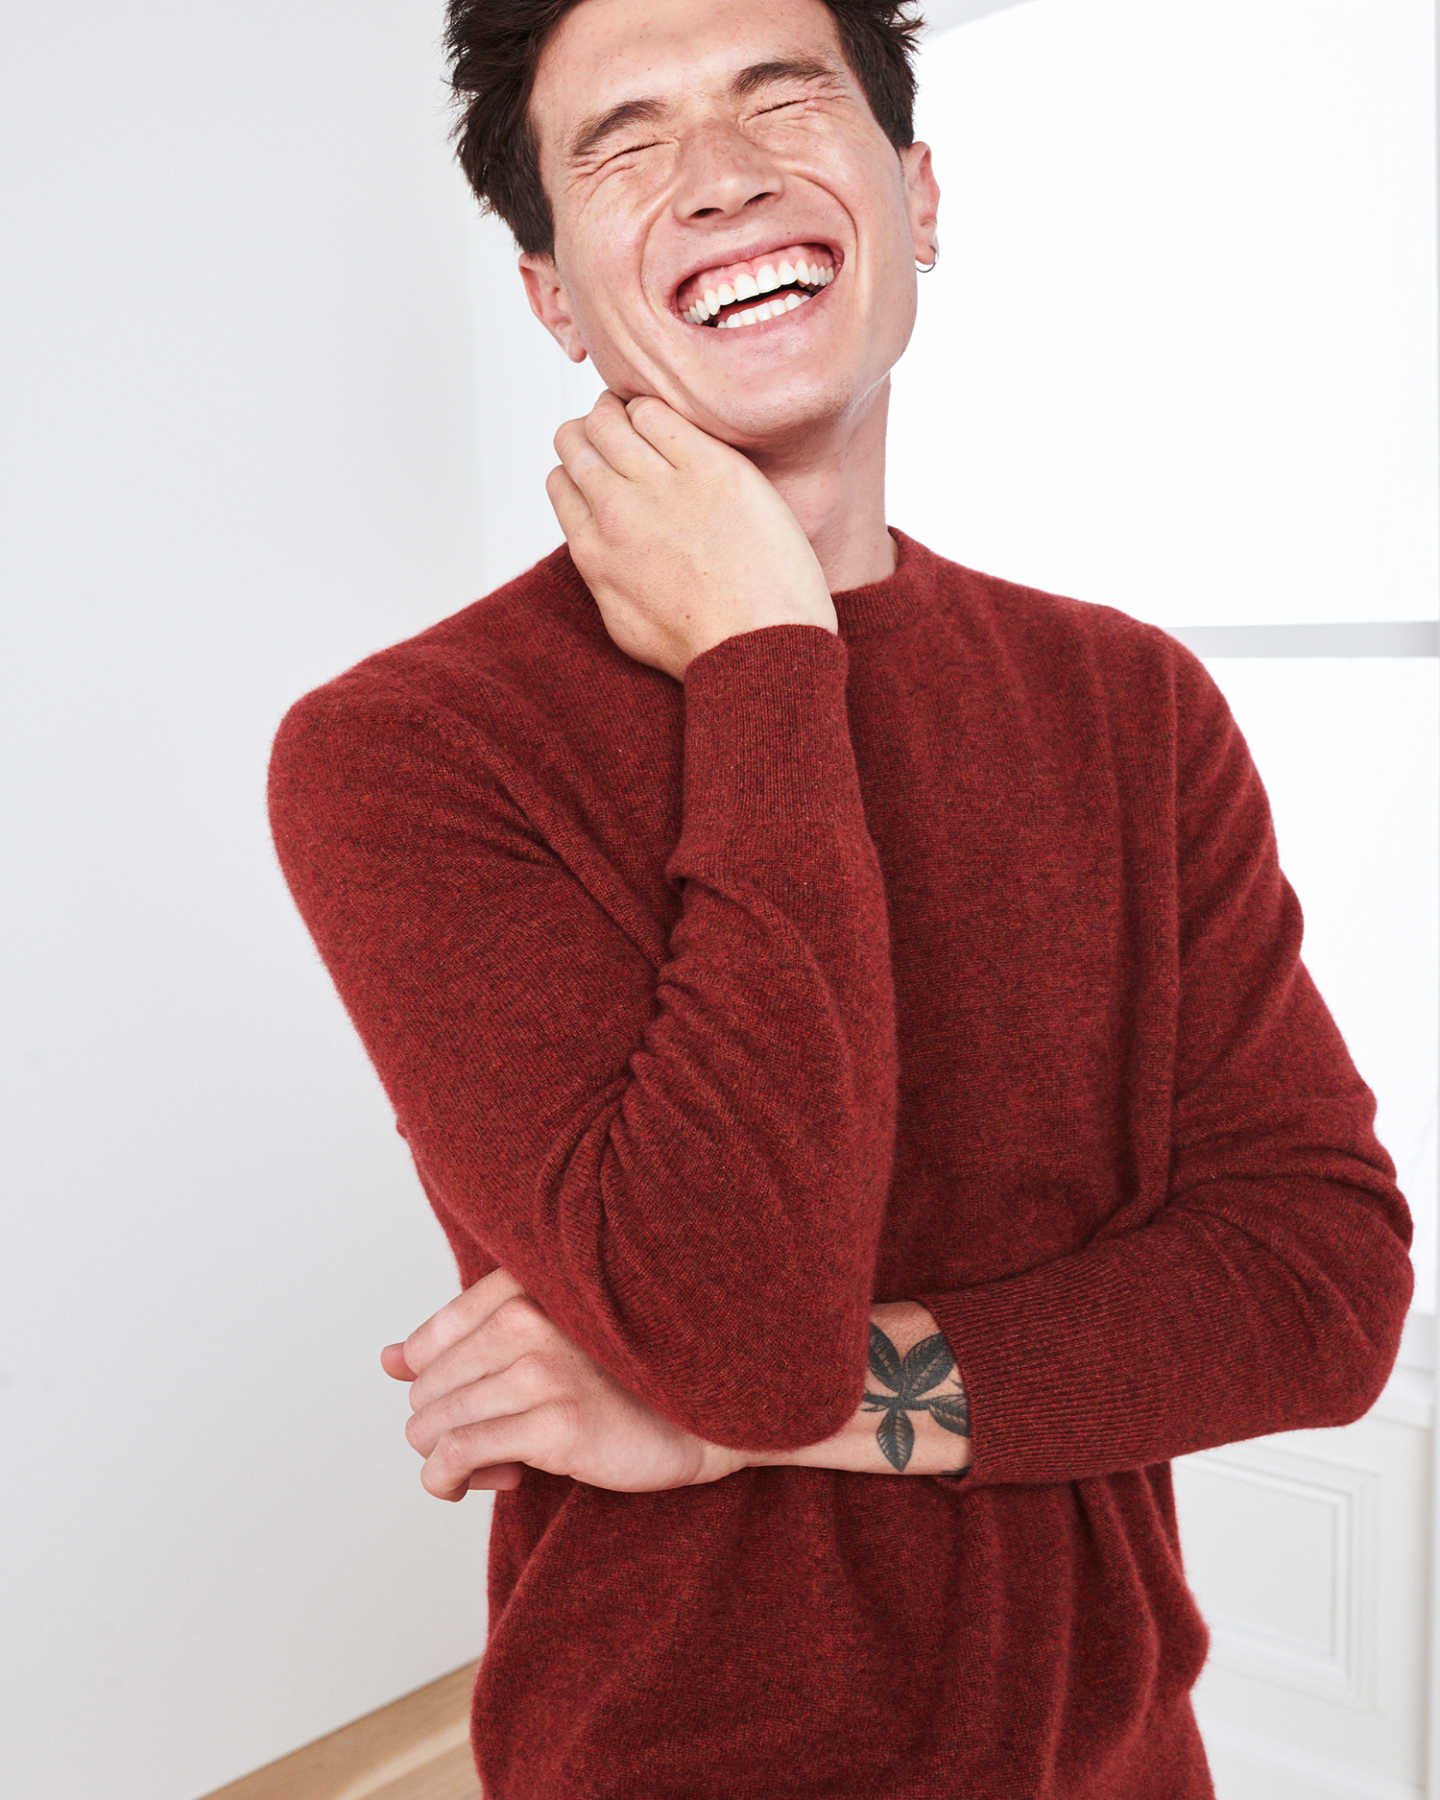 Man wearing red men's cashmere sweater laughing